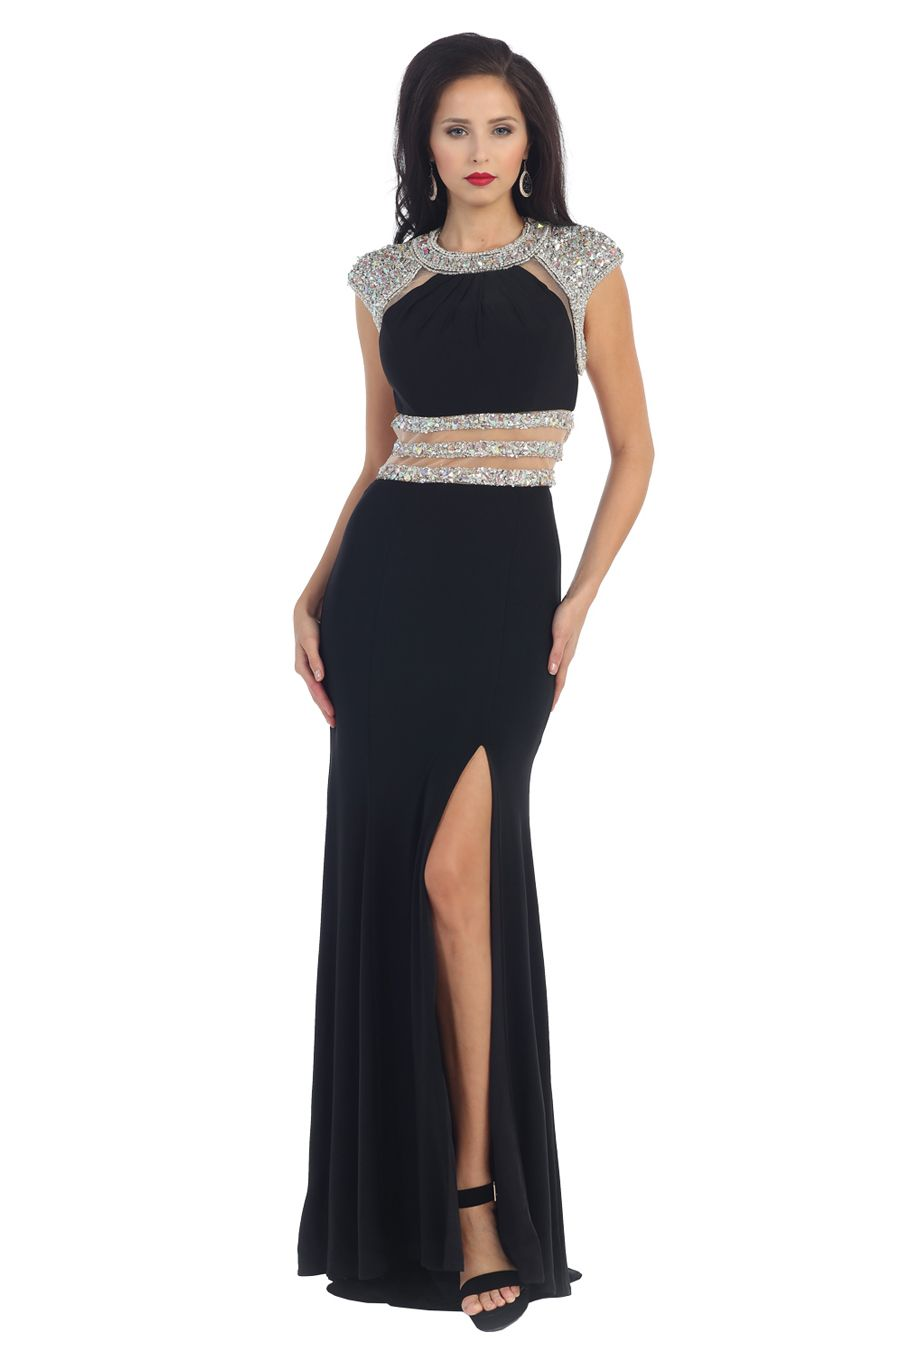 Glitzy and shimmering this gown from may queen rq is alluringly